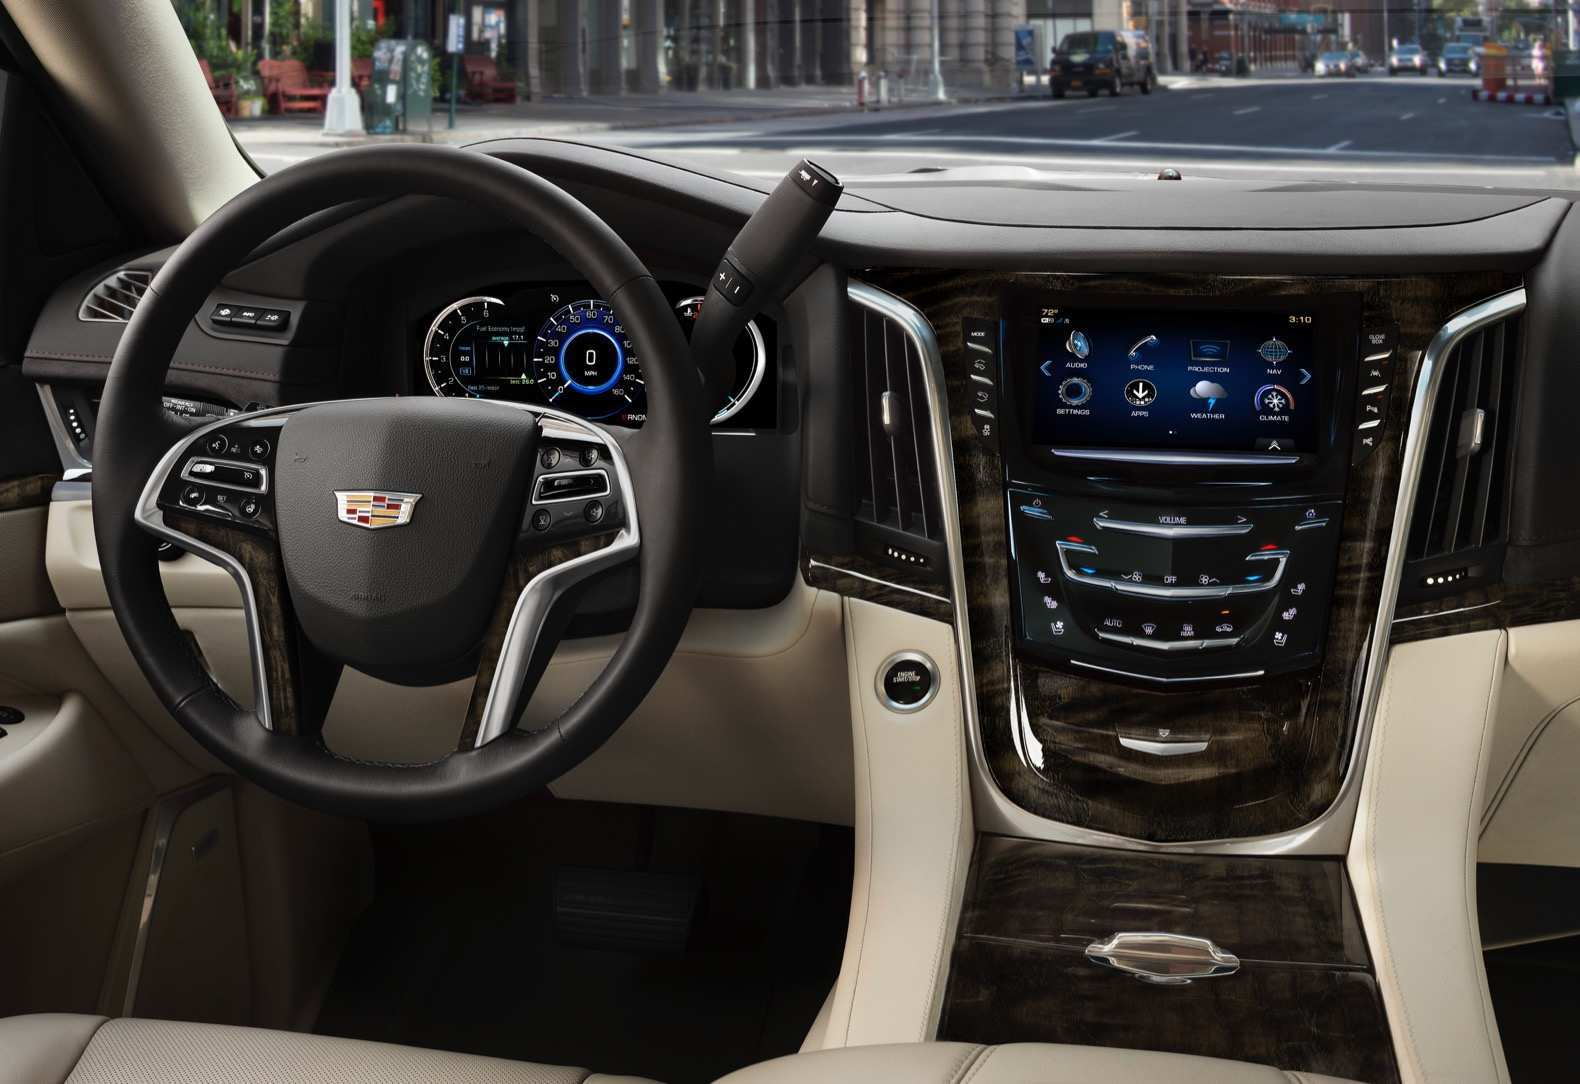 12 New 2019 Cadillac Escalade Vsport Images